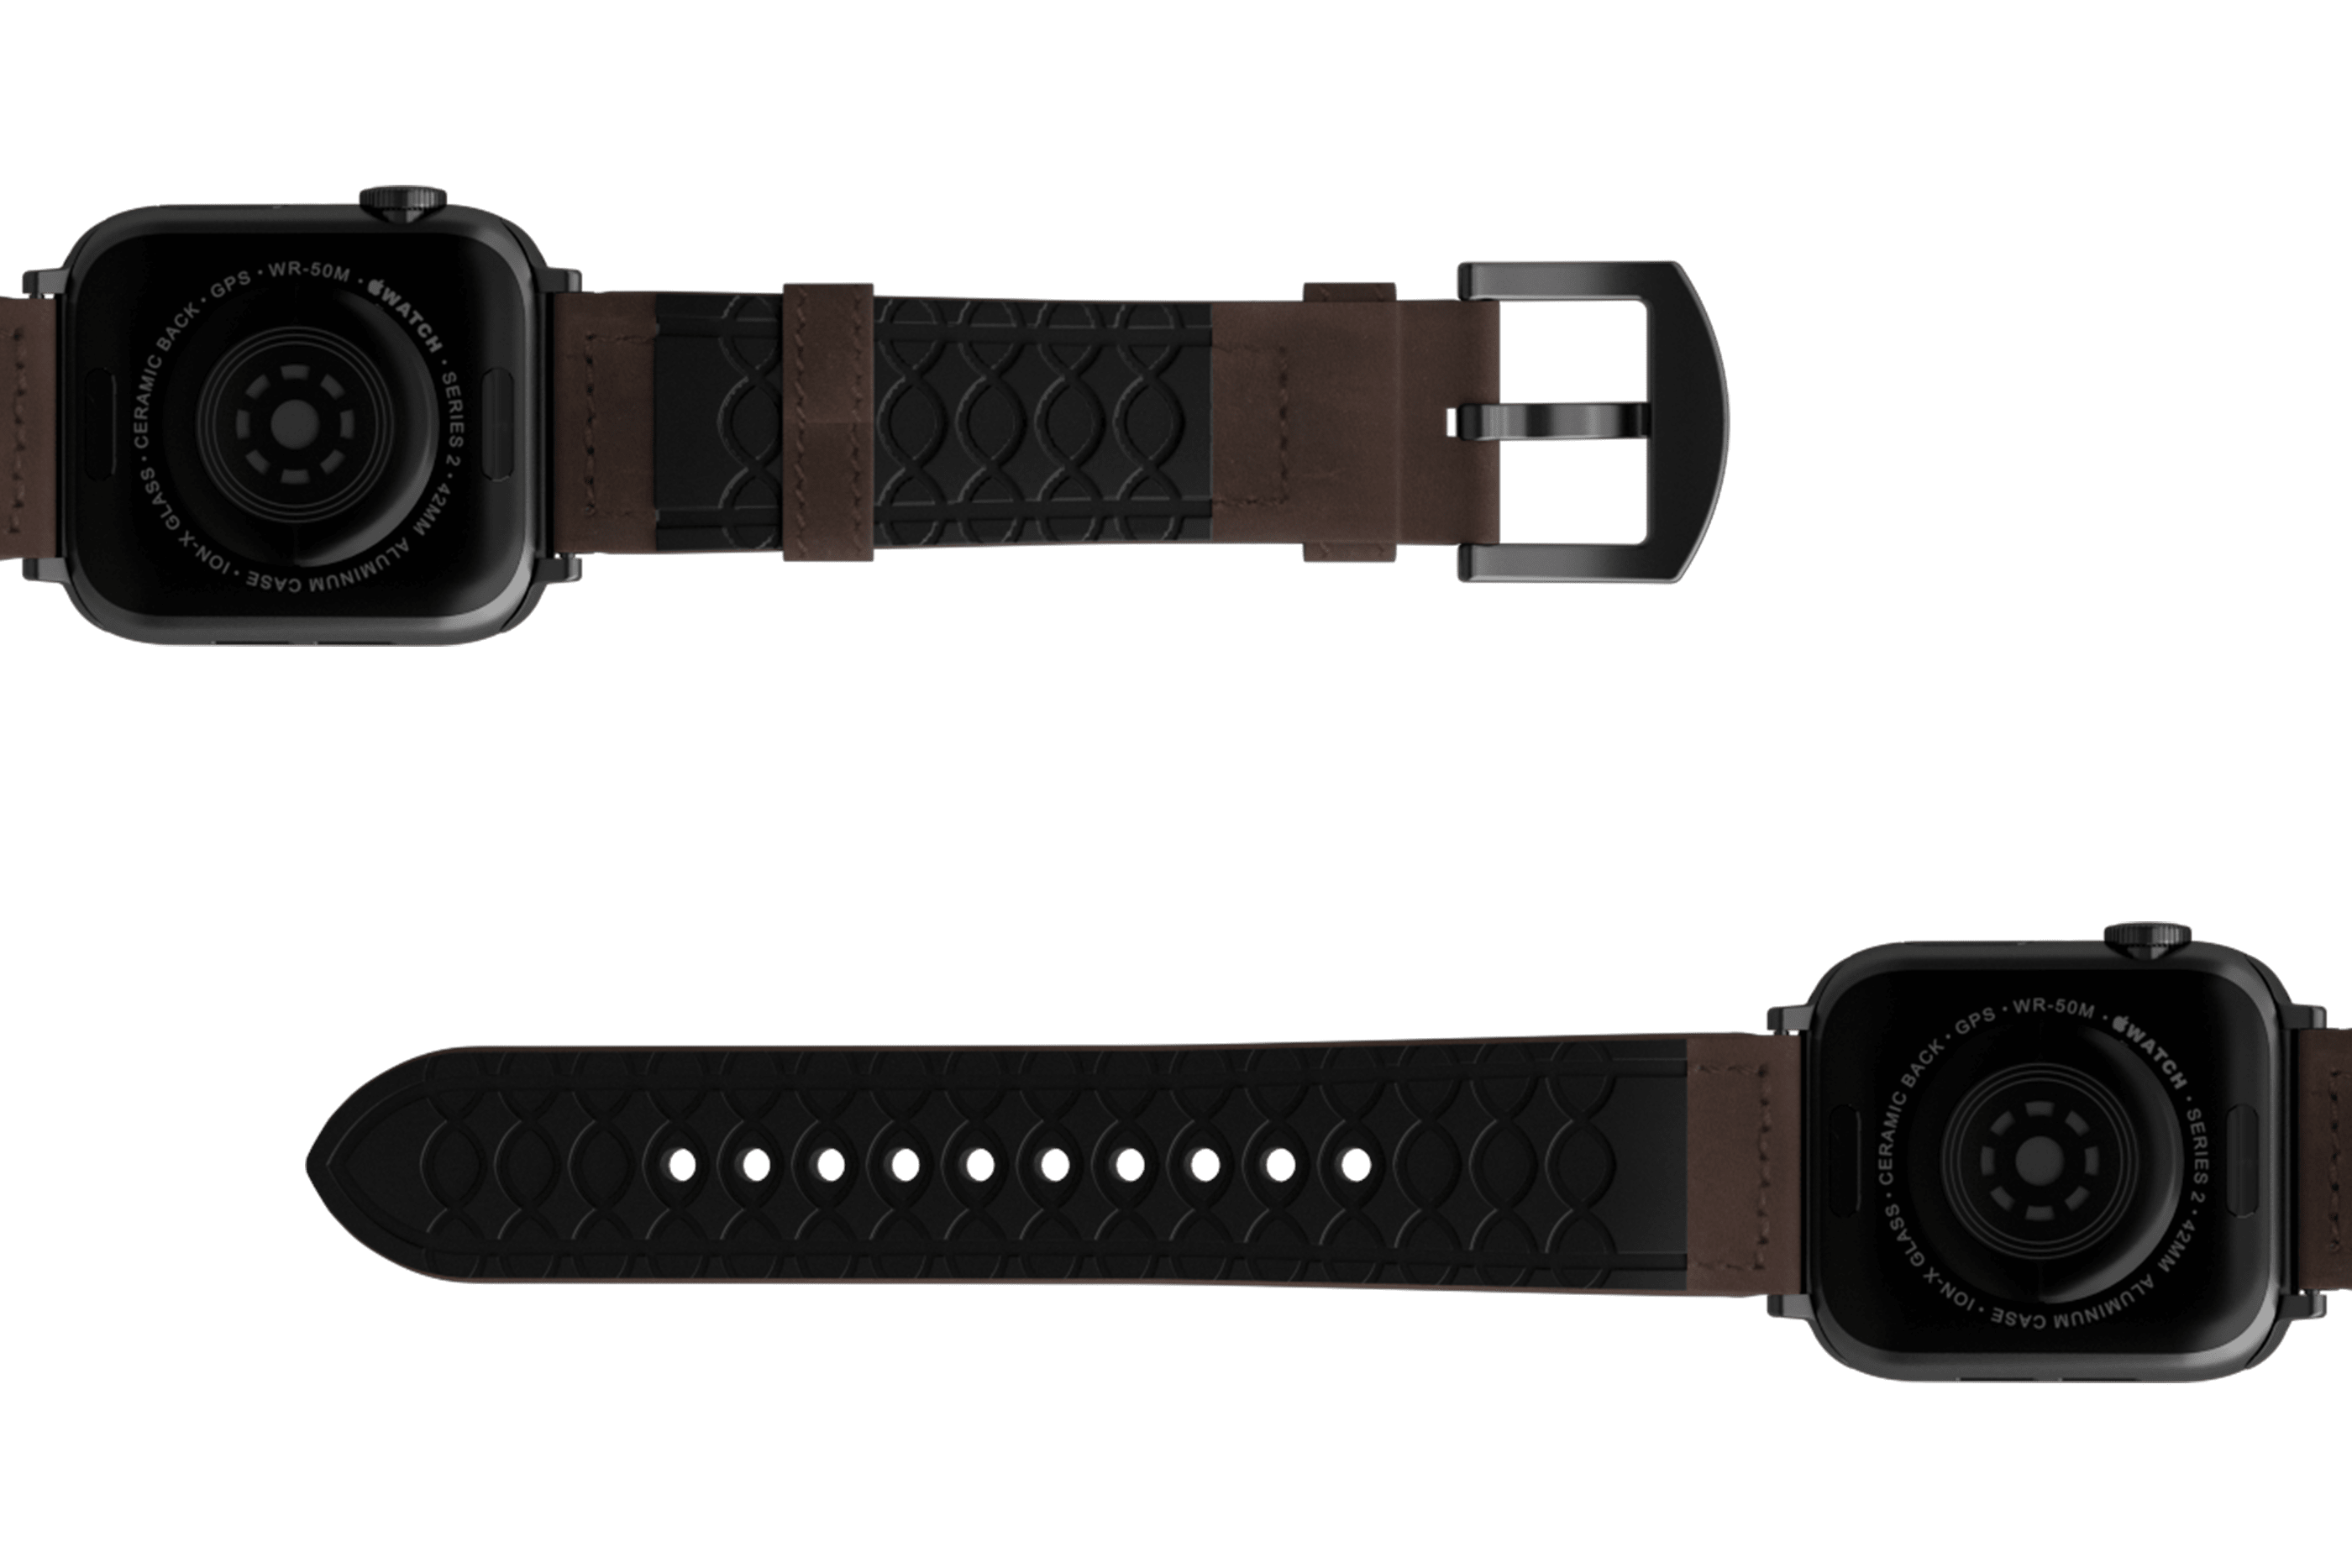 Vulcan Ascent Leather Apple   watch band with gray hardware viewed bottom up